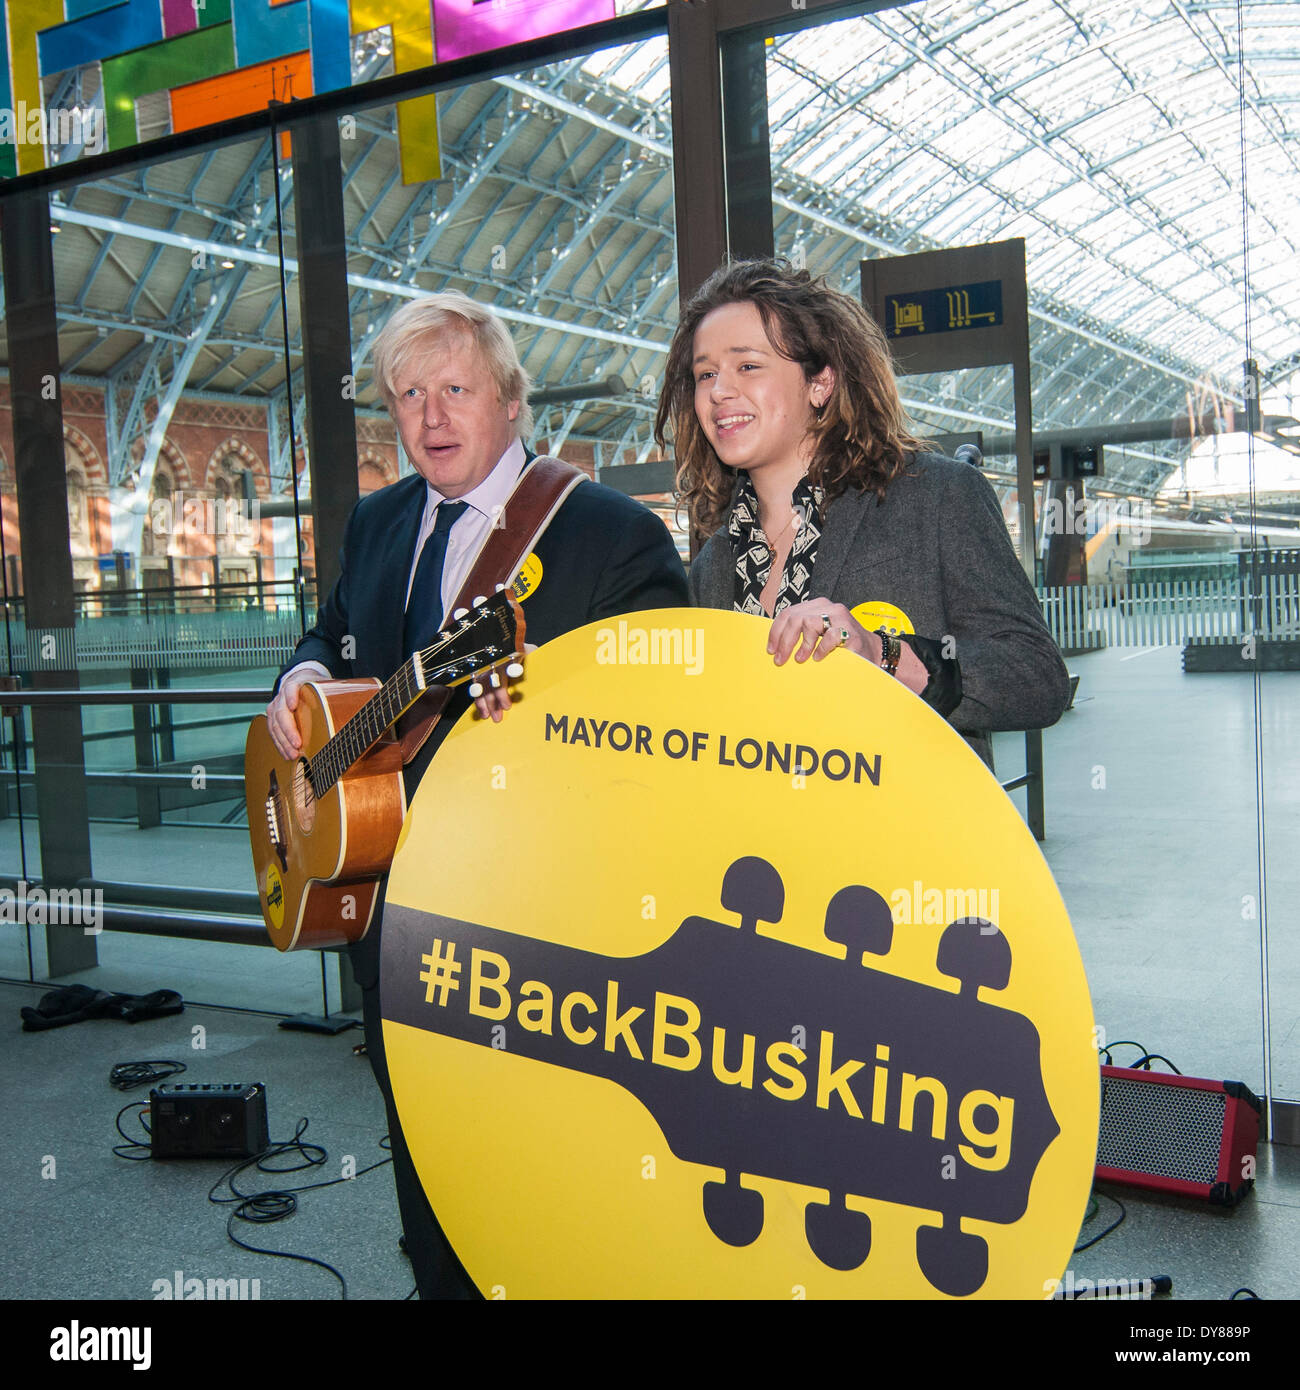 St. Pancras International station, London, 9 April 2014.  Boris Johnson, Mayor of  London, announces the Gigs busking competition 2014 and launches the #BackBusking campaign to nurture the capital's street musicians.  Pictured, the Mayor of London and rising pop star, Luke Friend. Credit:  Stephen Chung/Alamy Live News - Stock Image